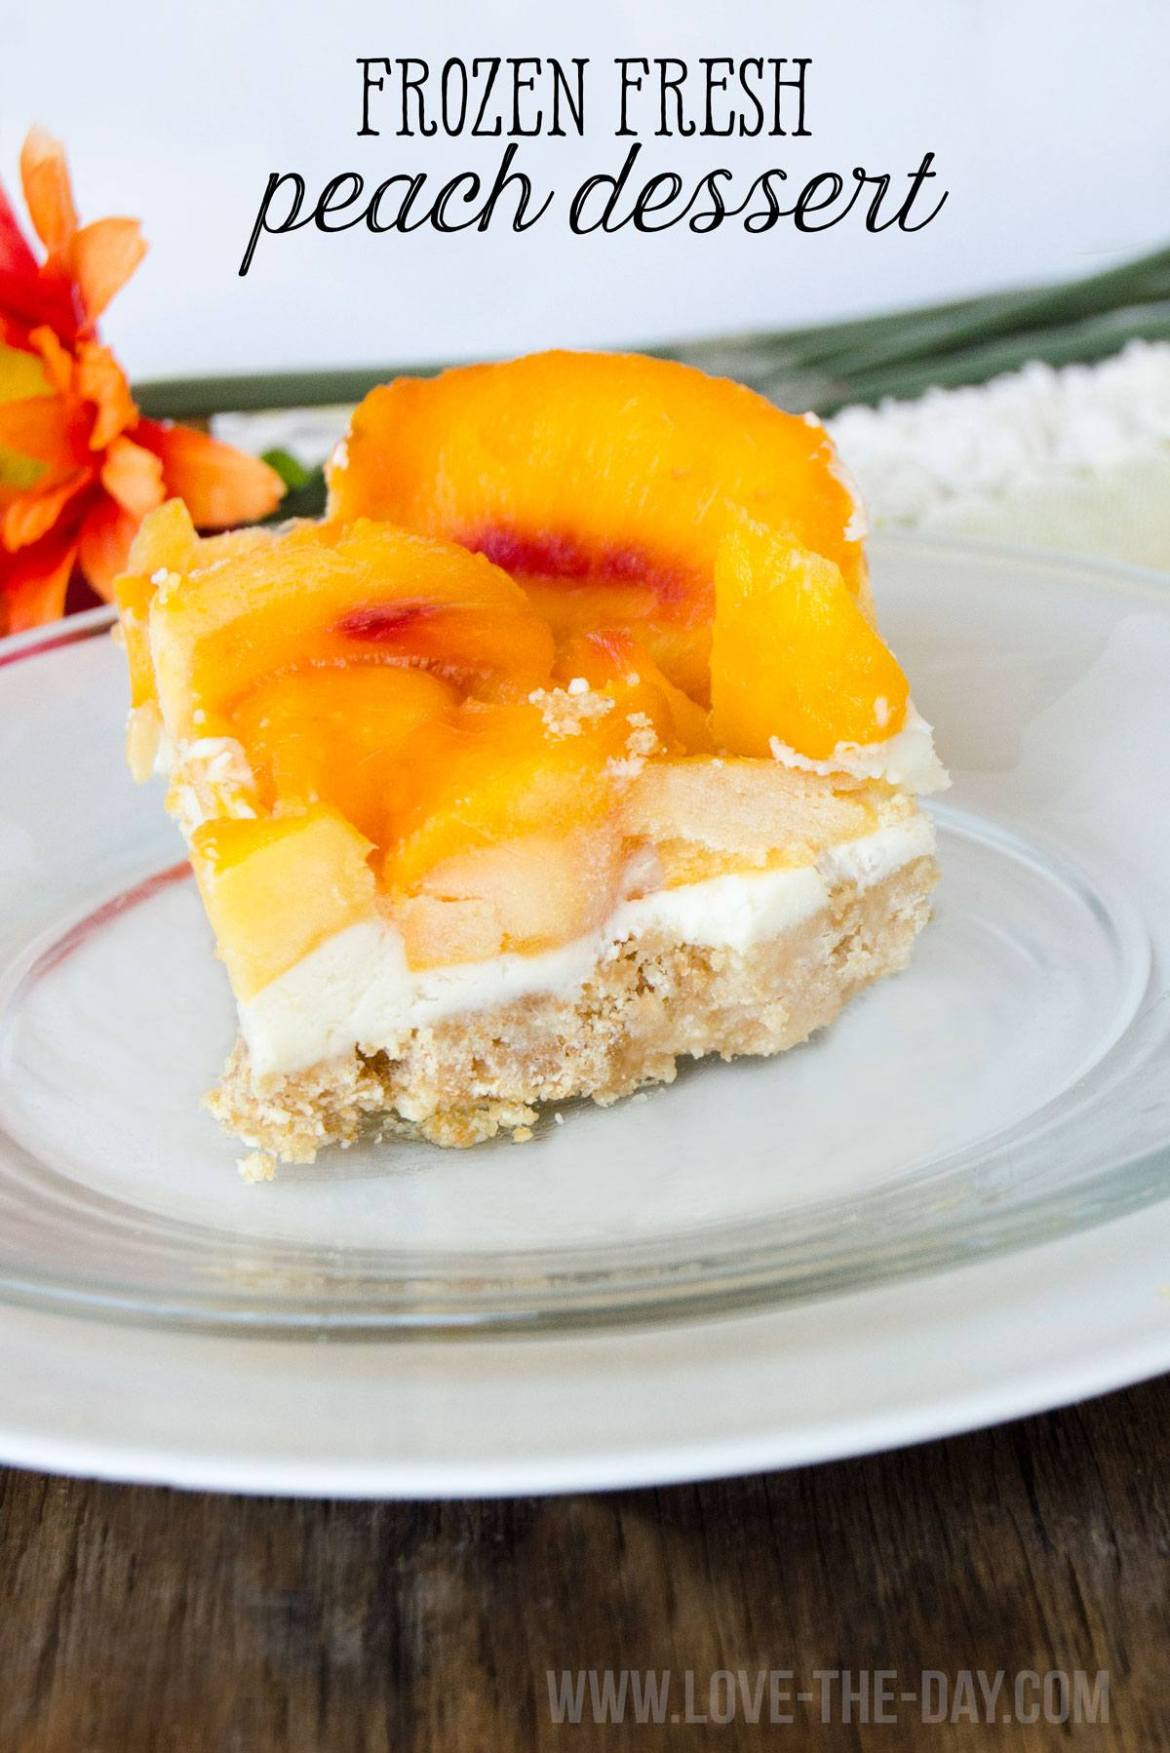 Frozen Fresh Peach Dessert by Love The Day